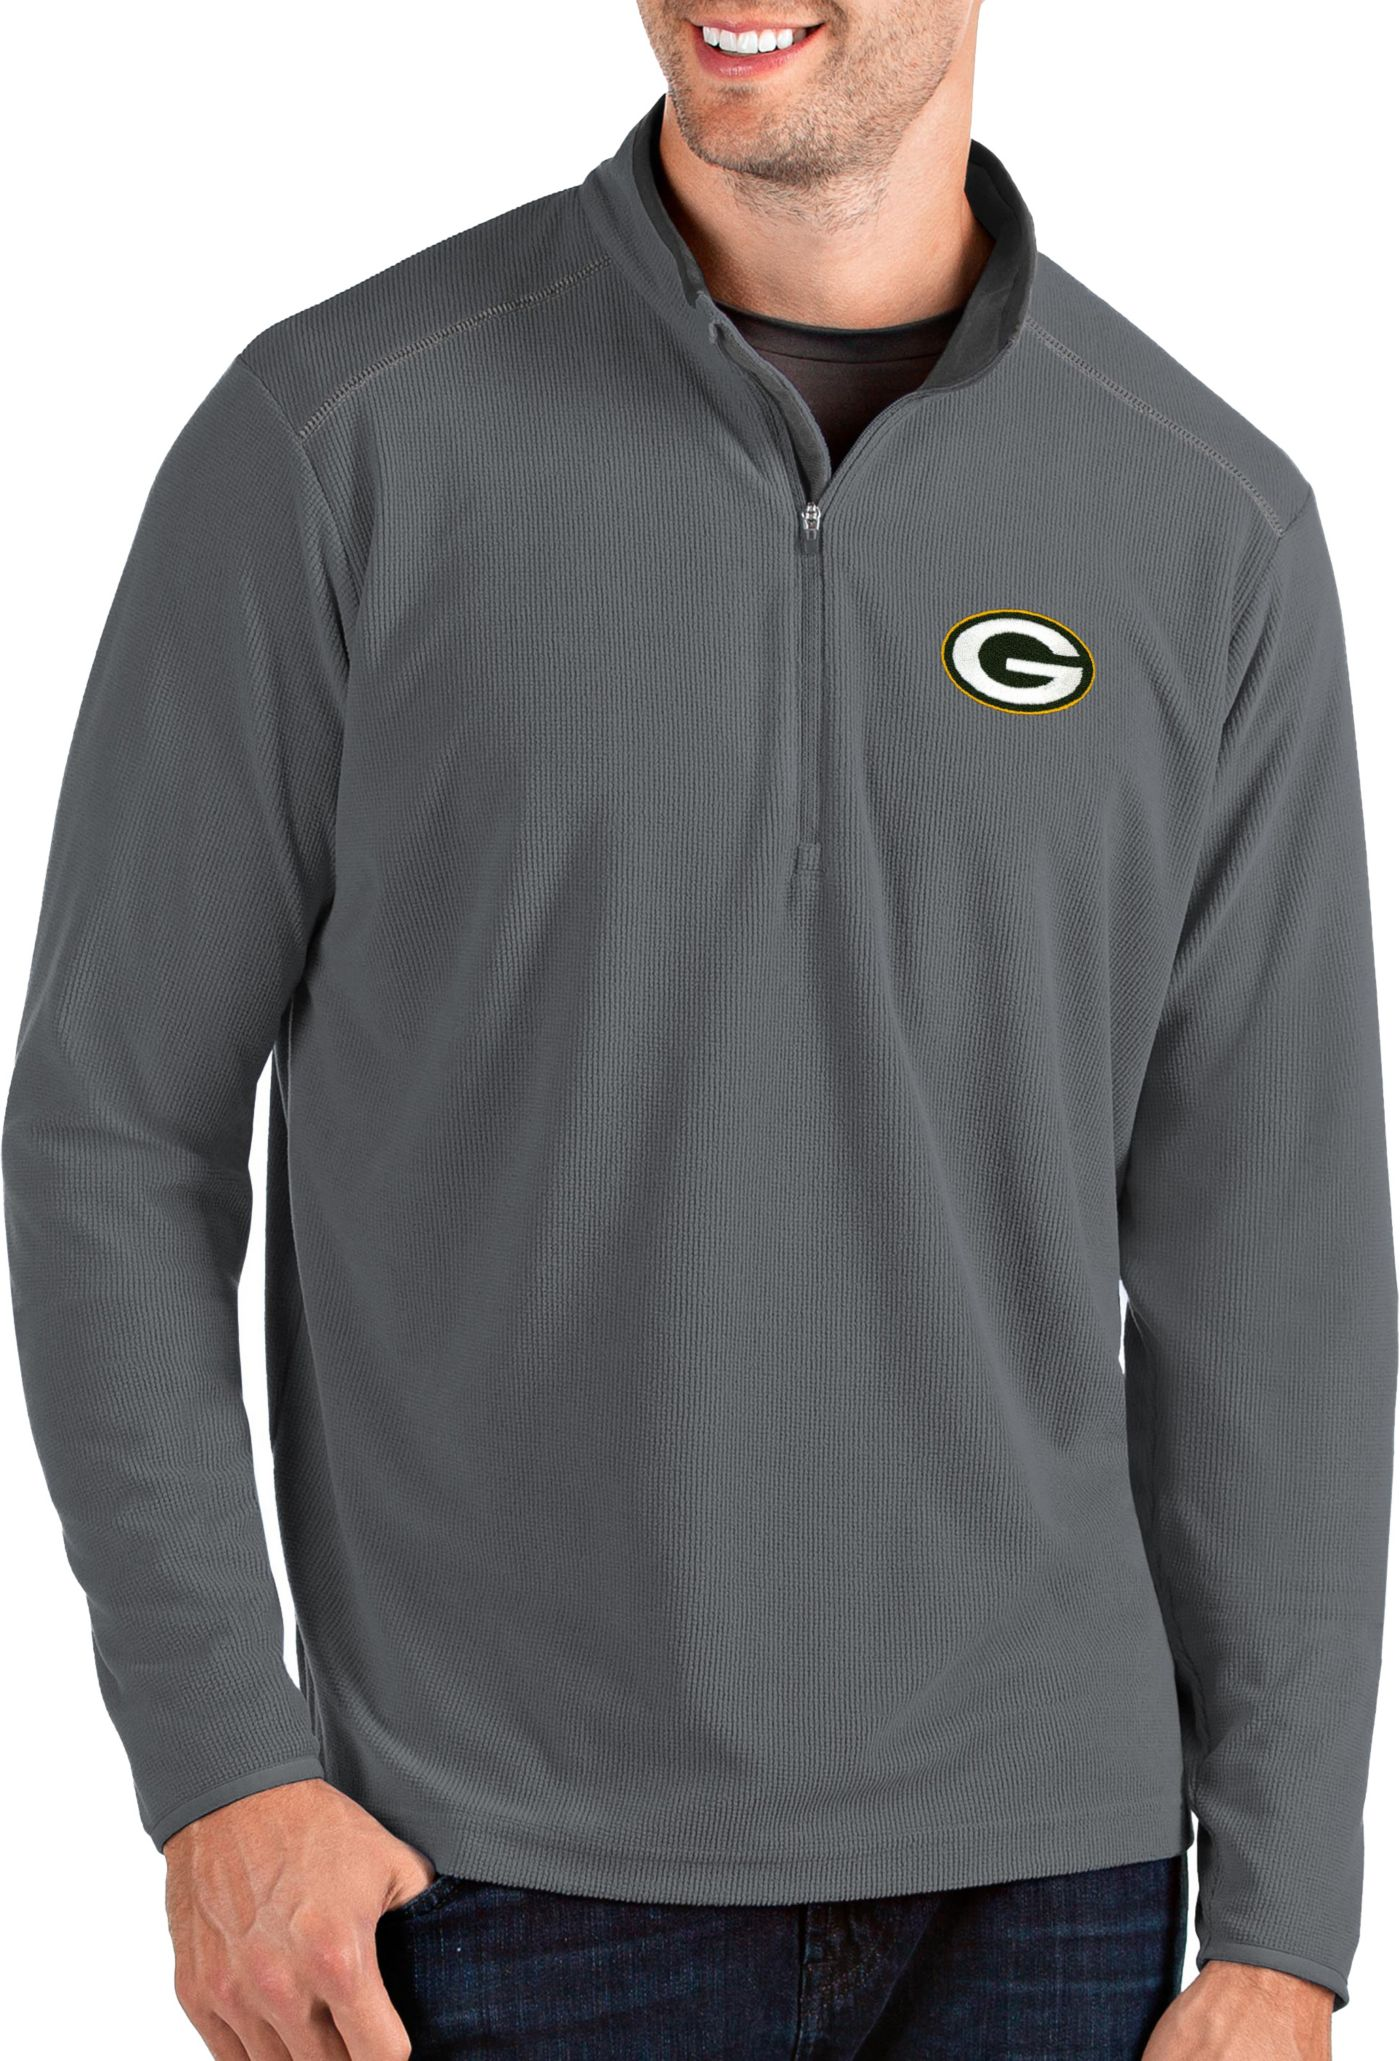 Antigua Men's Green Bay Packers Glacier Grey Quarter-Zip Pullover